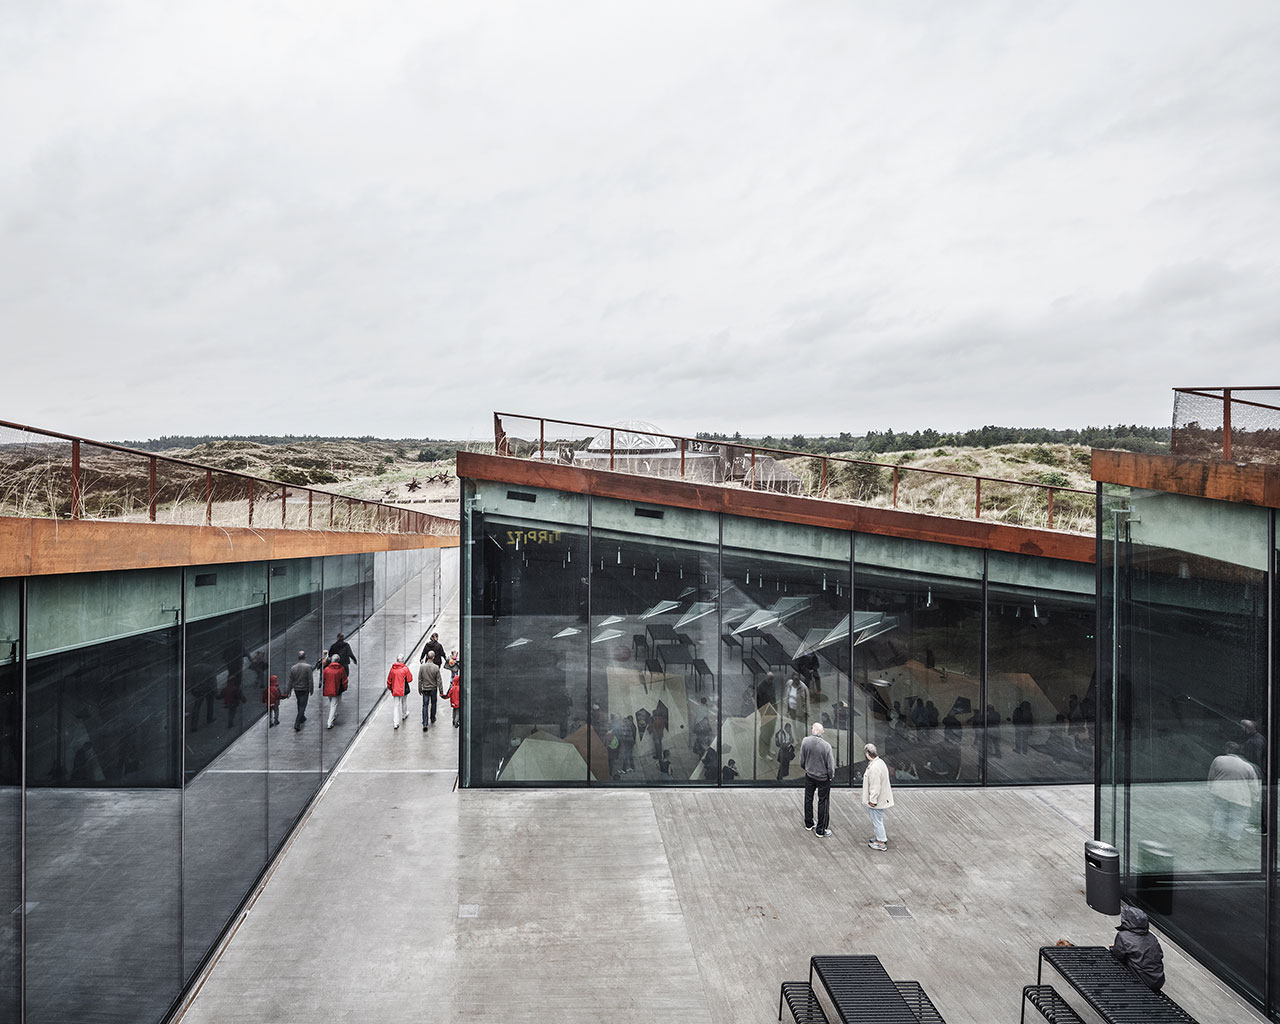 The central courtyard allows access into the four underground gallery spaces that have an abundance of daylight even though they are literally carved into the sand. Photo by Rasmus Hjortshoj.